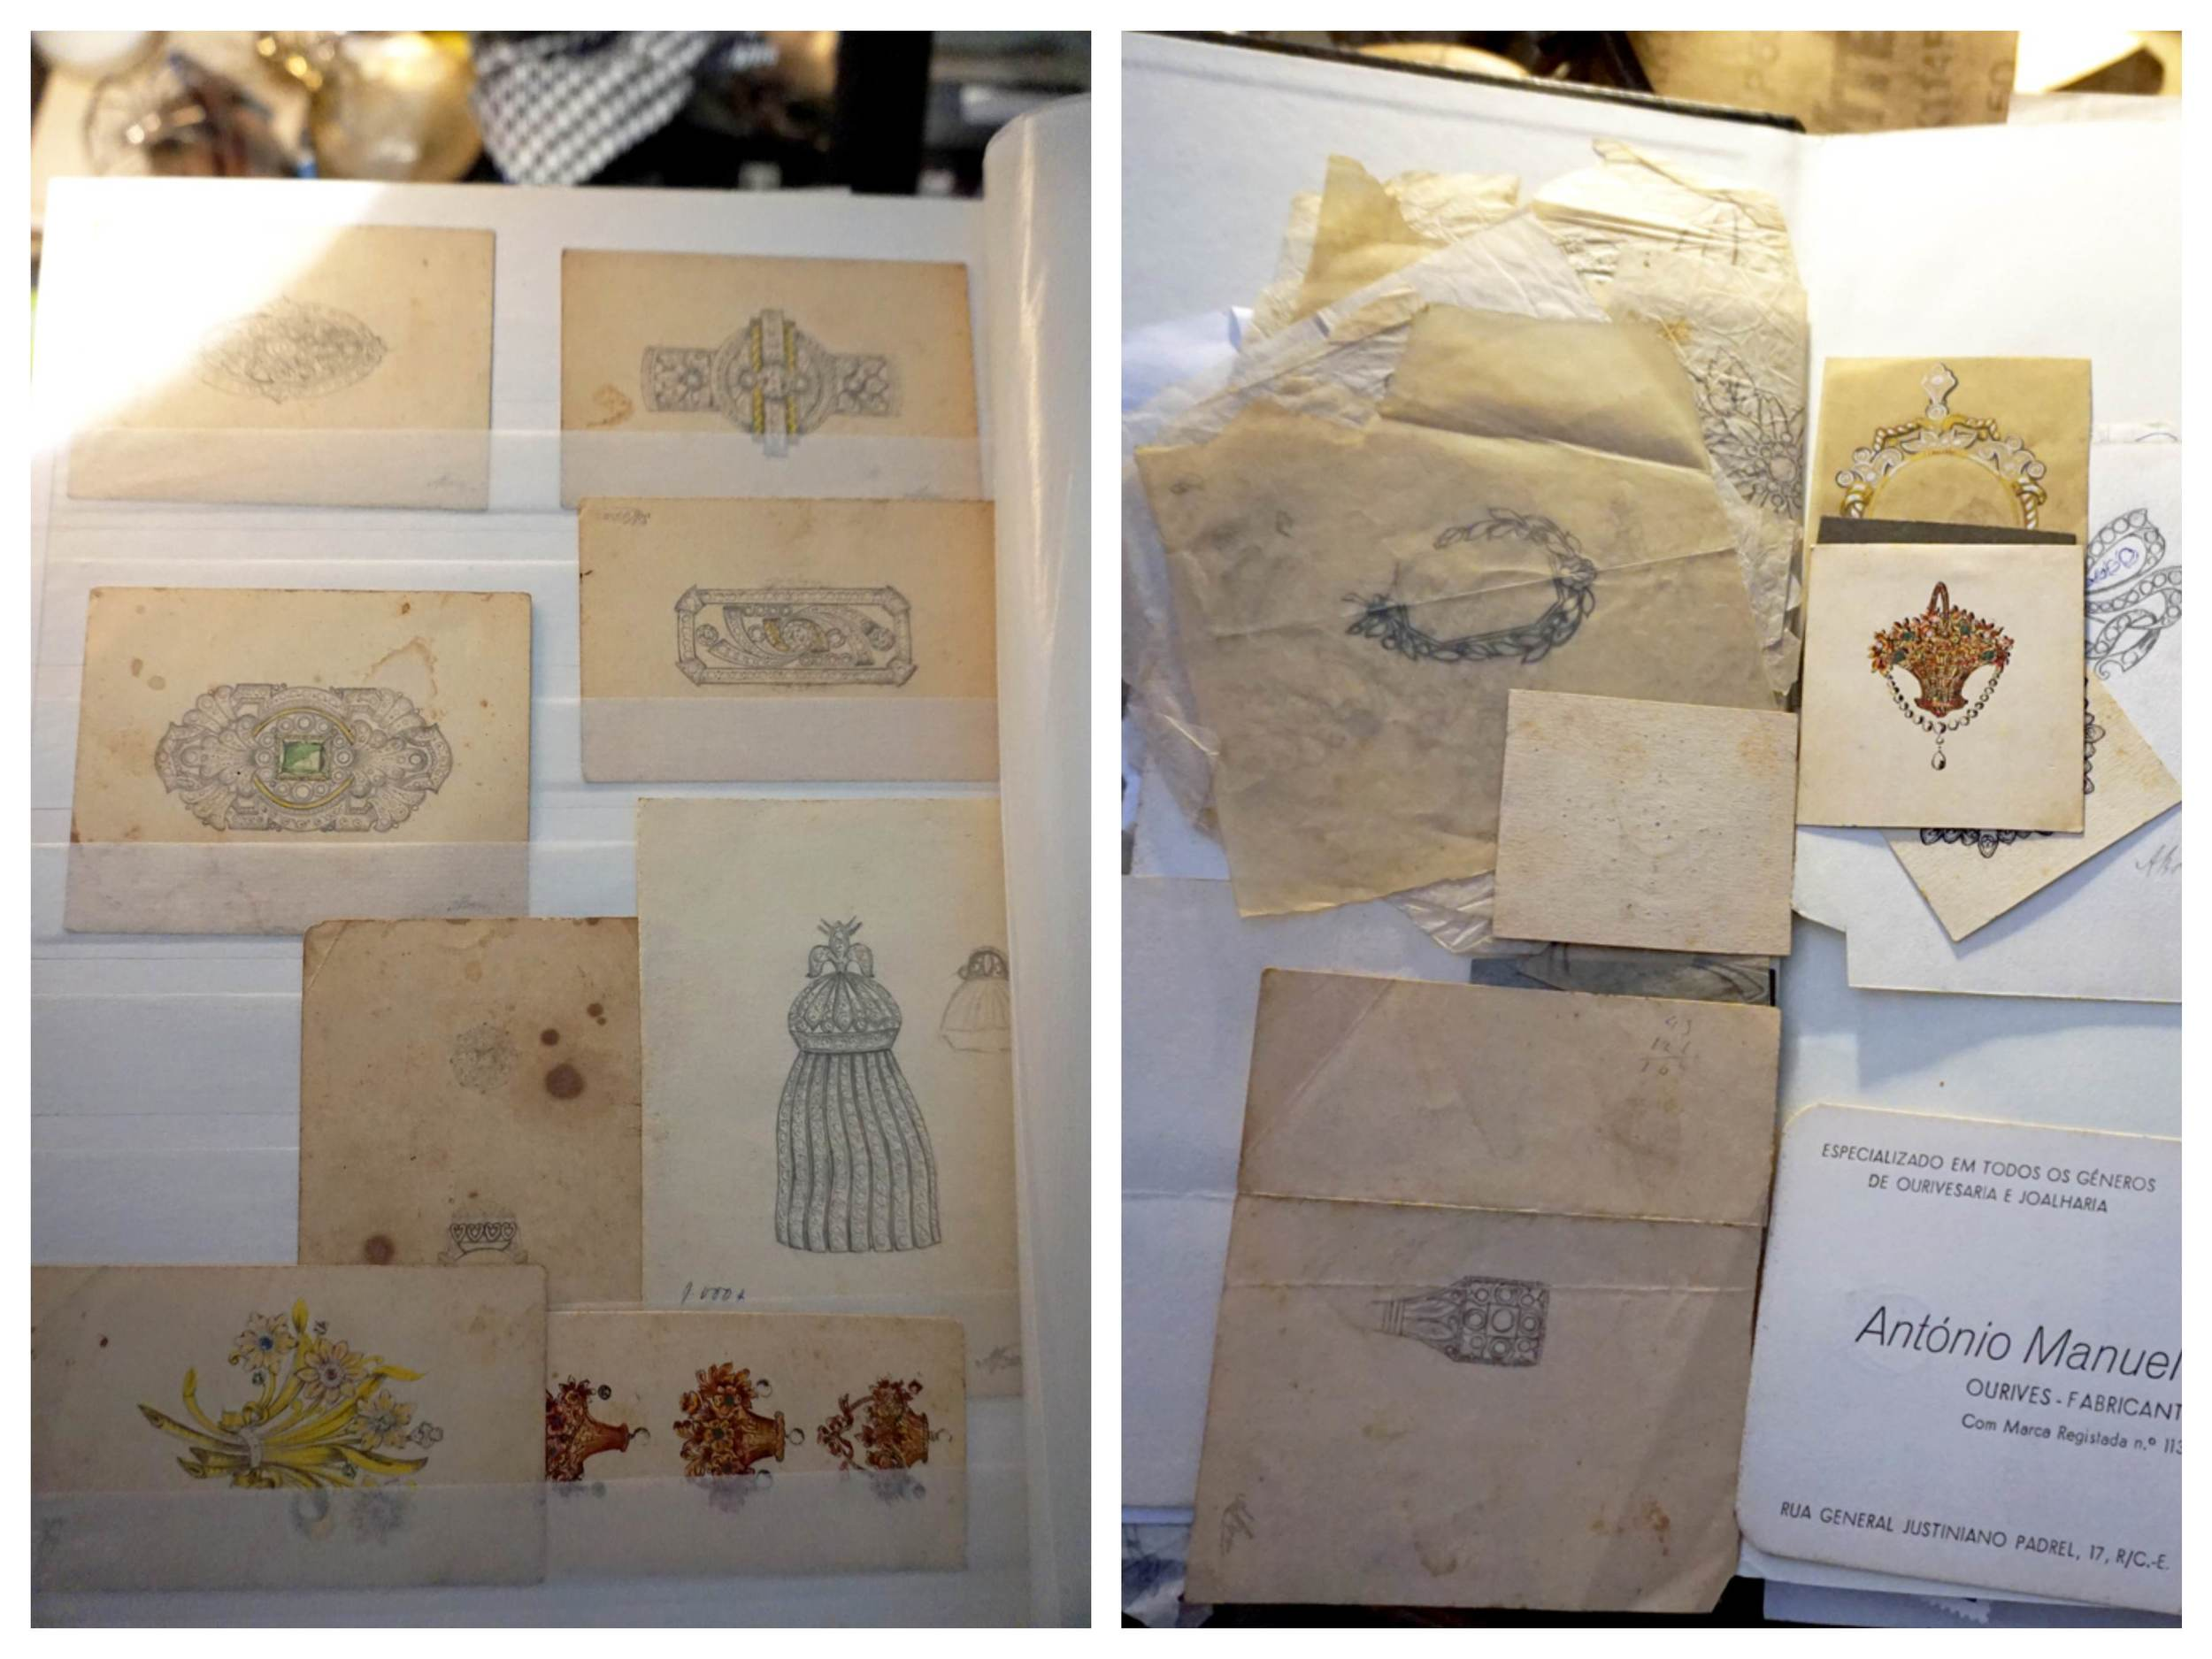 (Some of the sketchbooks left at the Sebastião's studio that belonged to the previous tenant, the retired jeweler)